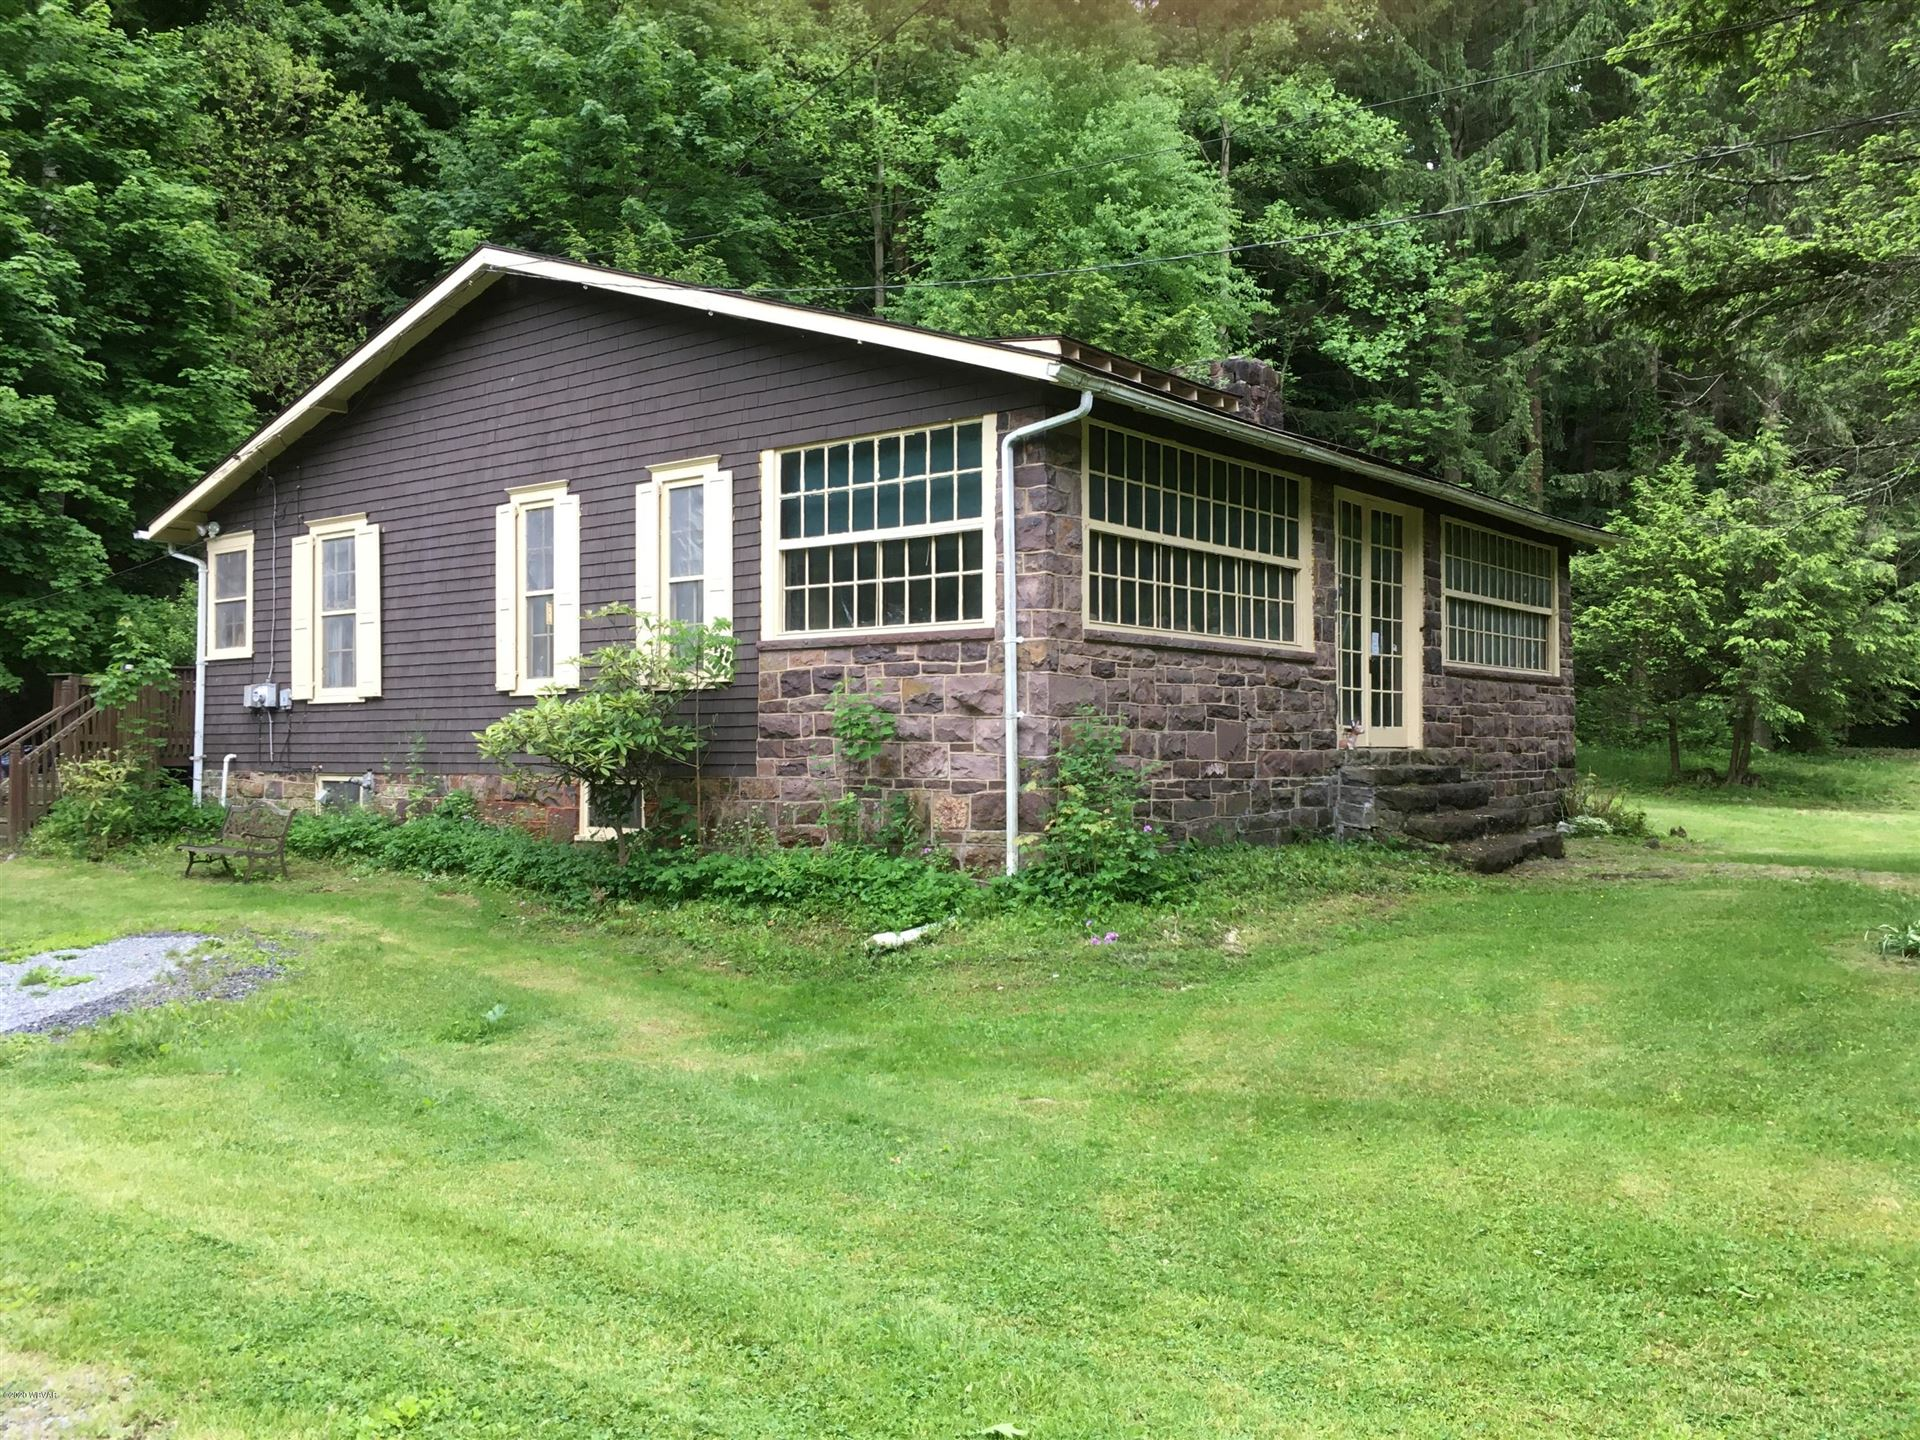 401 VALLEY STREET, South Williamsport, PA 17702 - #: WB-90210